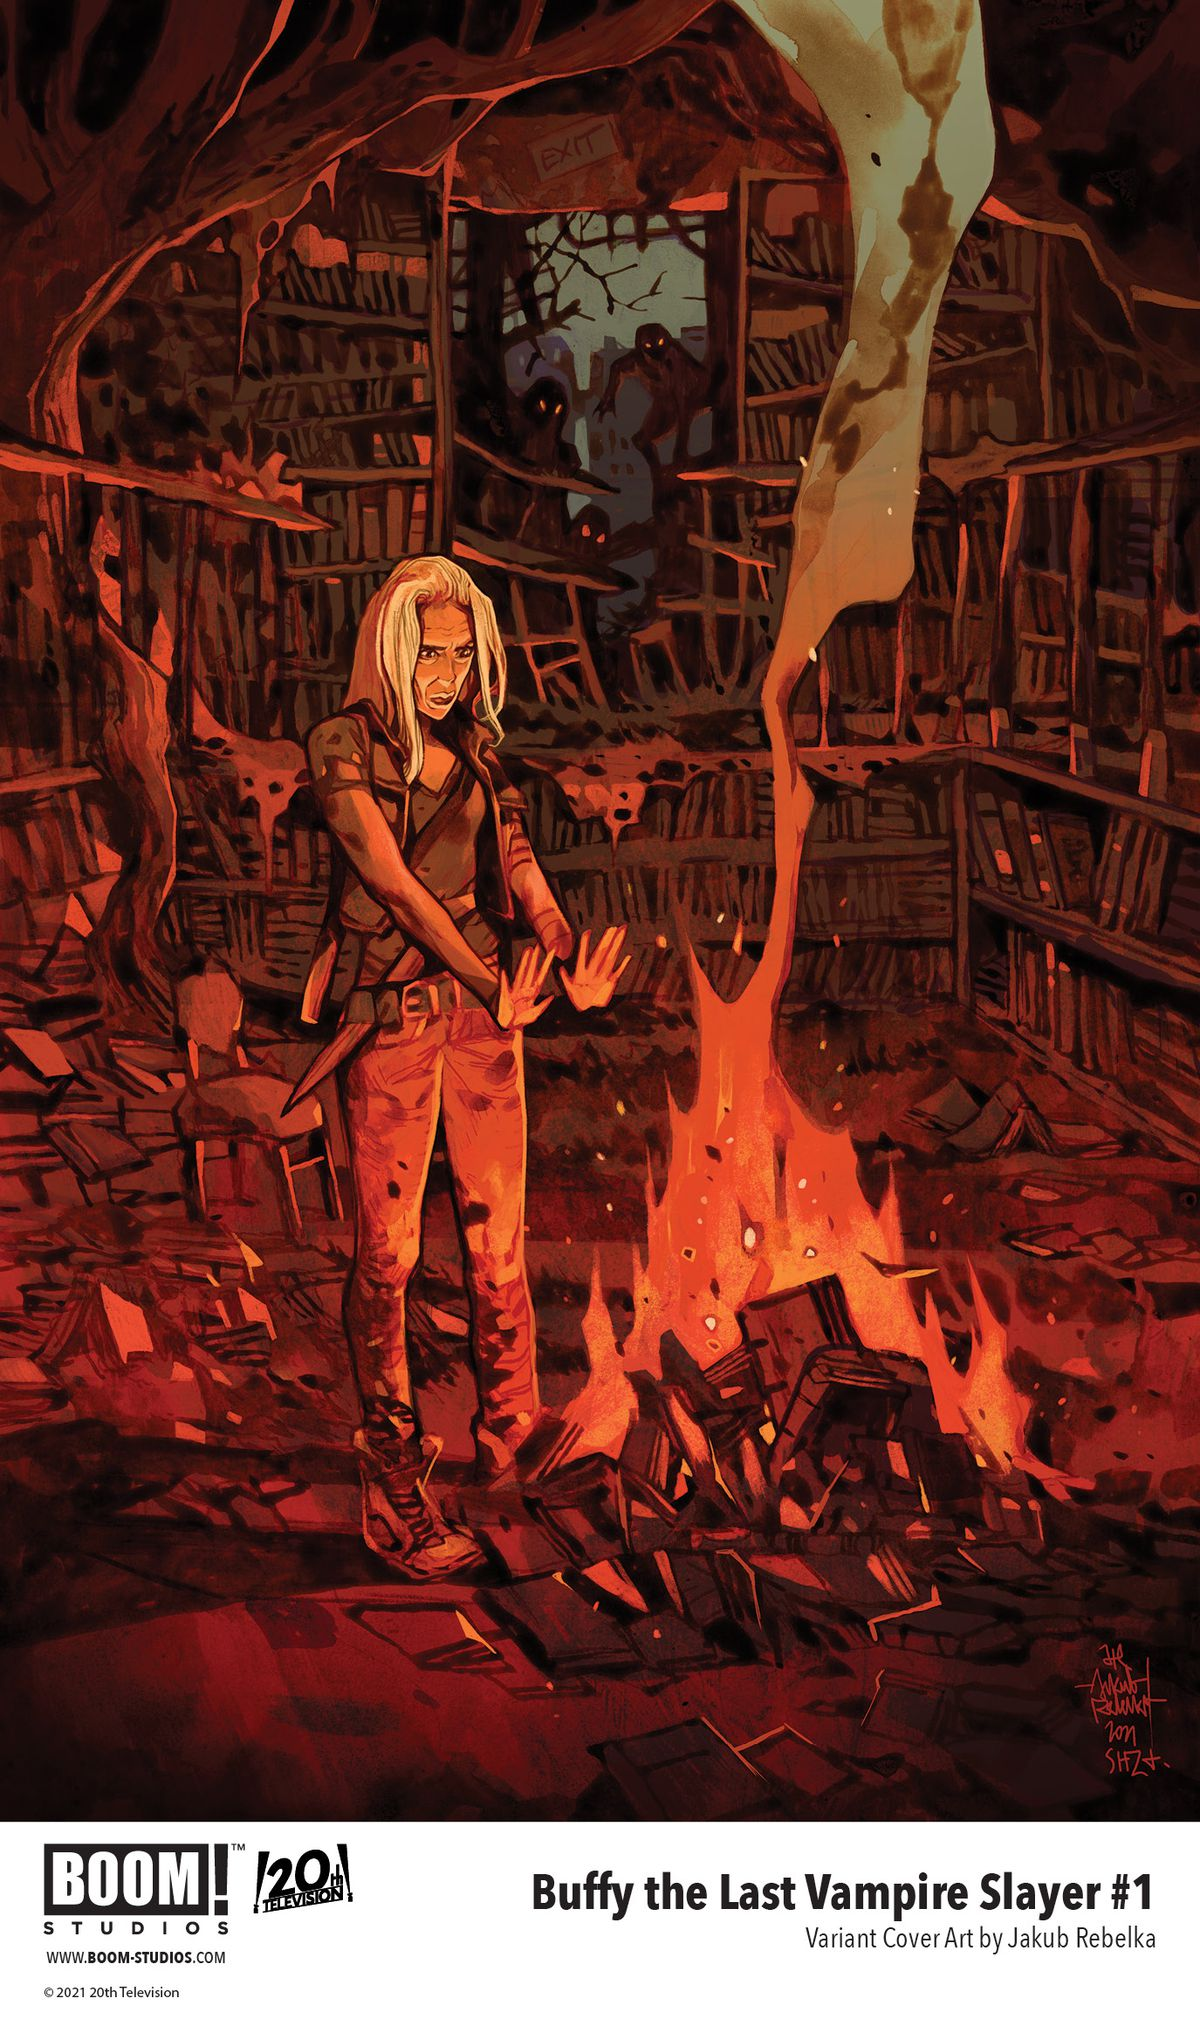 Buffy The Last Vampire Slayer - a variant cover for the first comic, showing an older Buffy Summers warming herself at a fire made out of a library. Vampires lurk menacingly nearby.